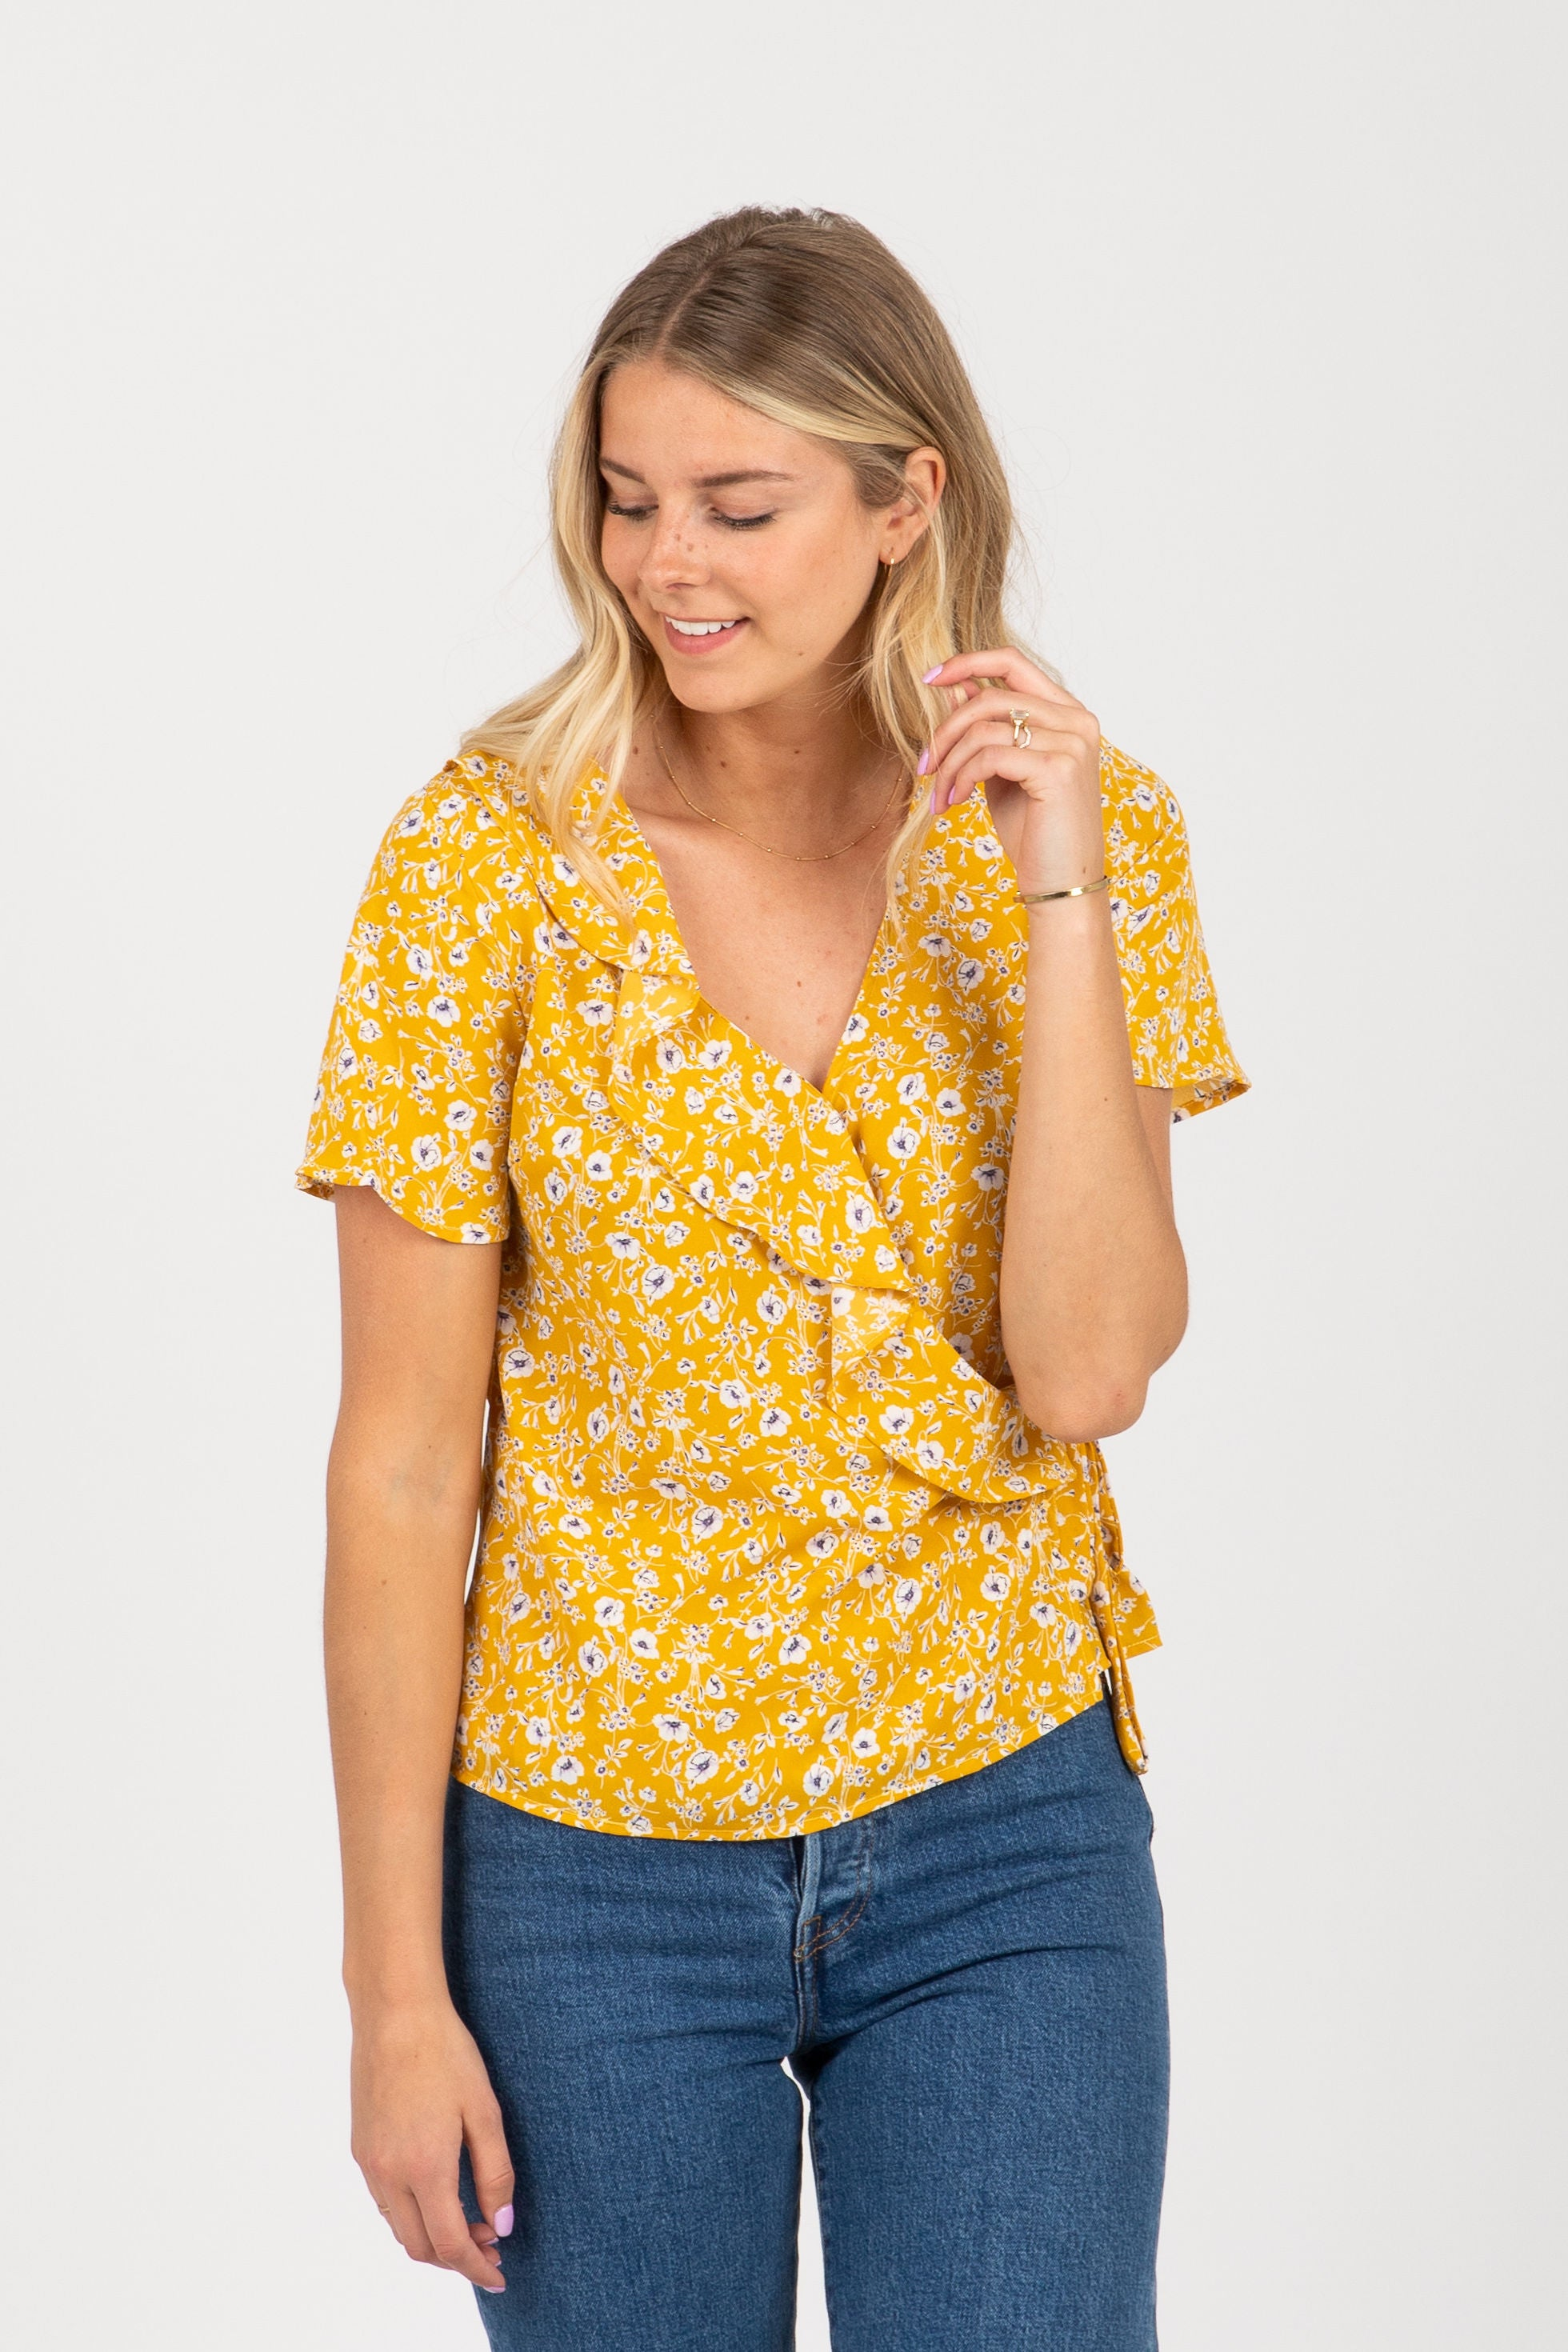 The Soba Floral Wrap Blouse in Mustard